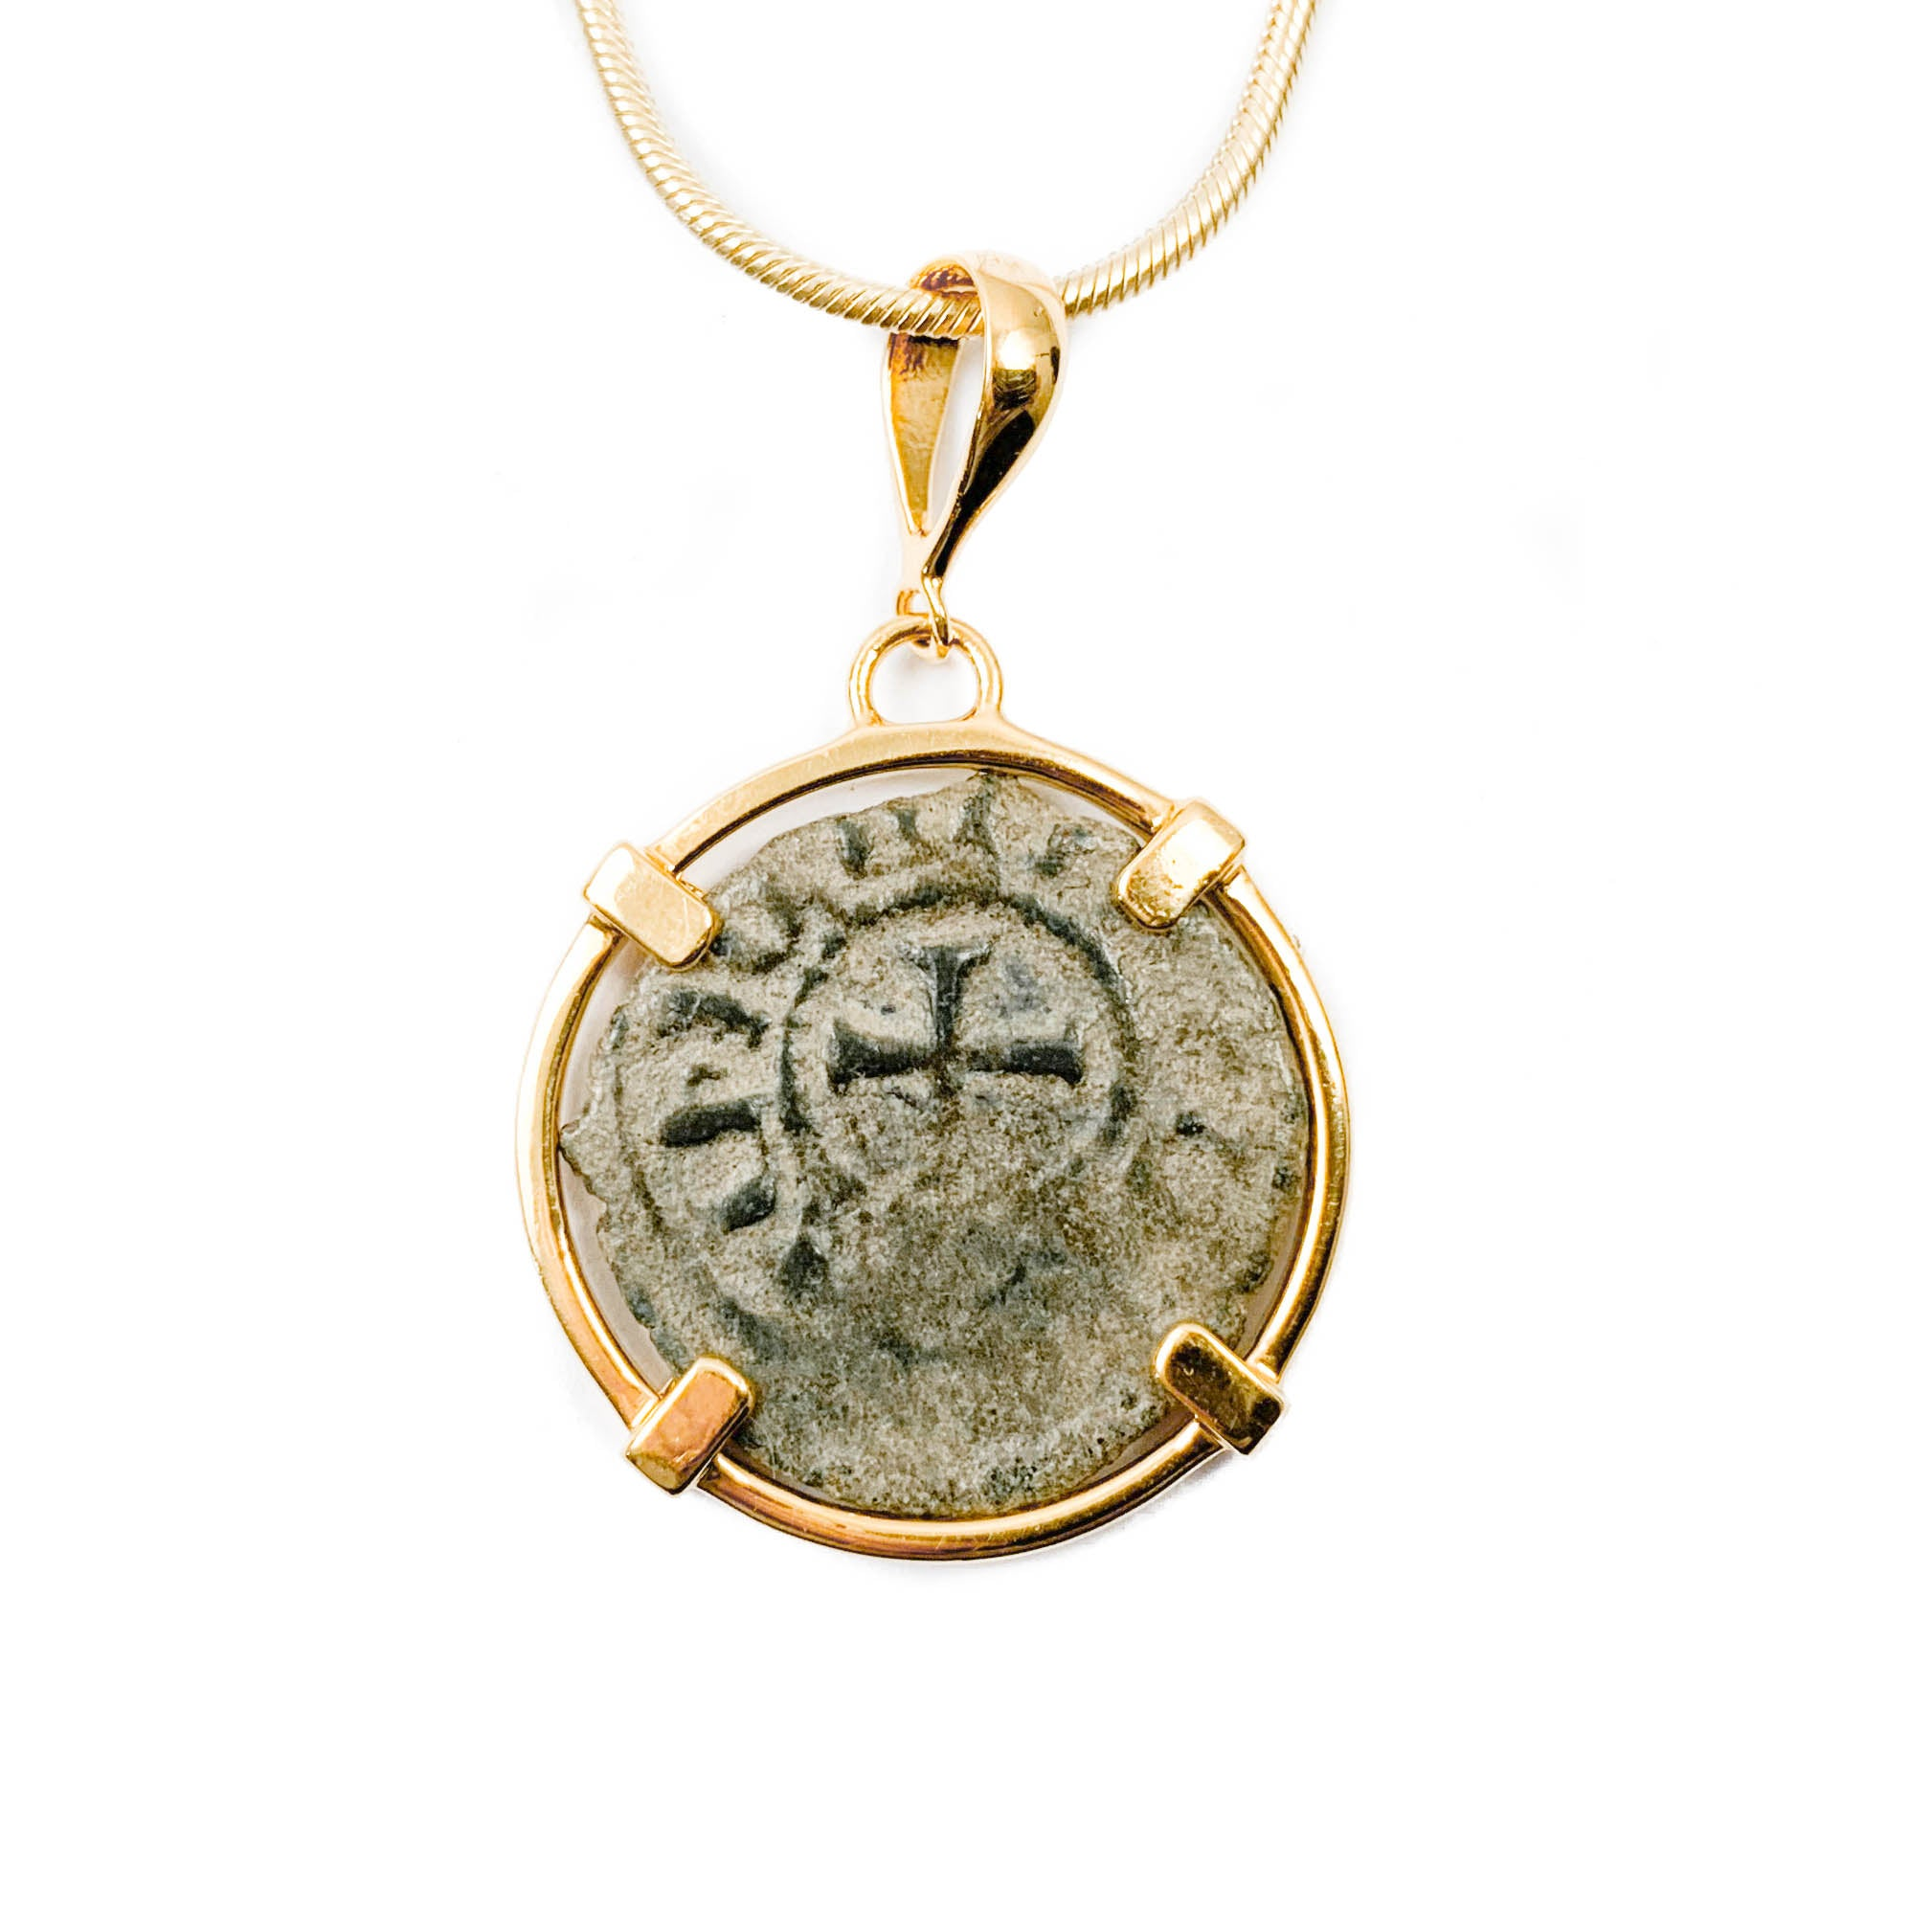 "Genuine Ancient ""Coin of the Crusades"" Necklace (HENRY II of CYPRUS & JERUSALEM, 1310-1324 A.D.)"